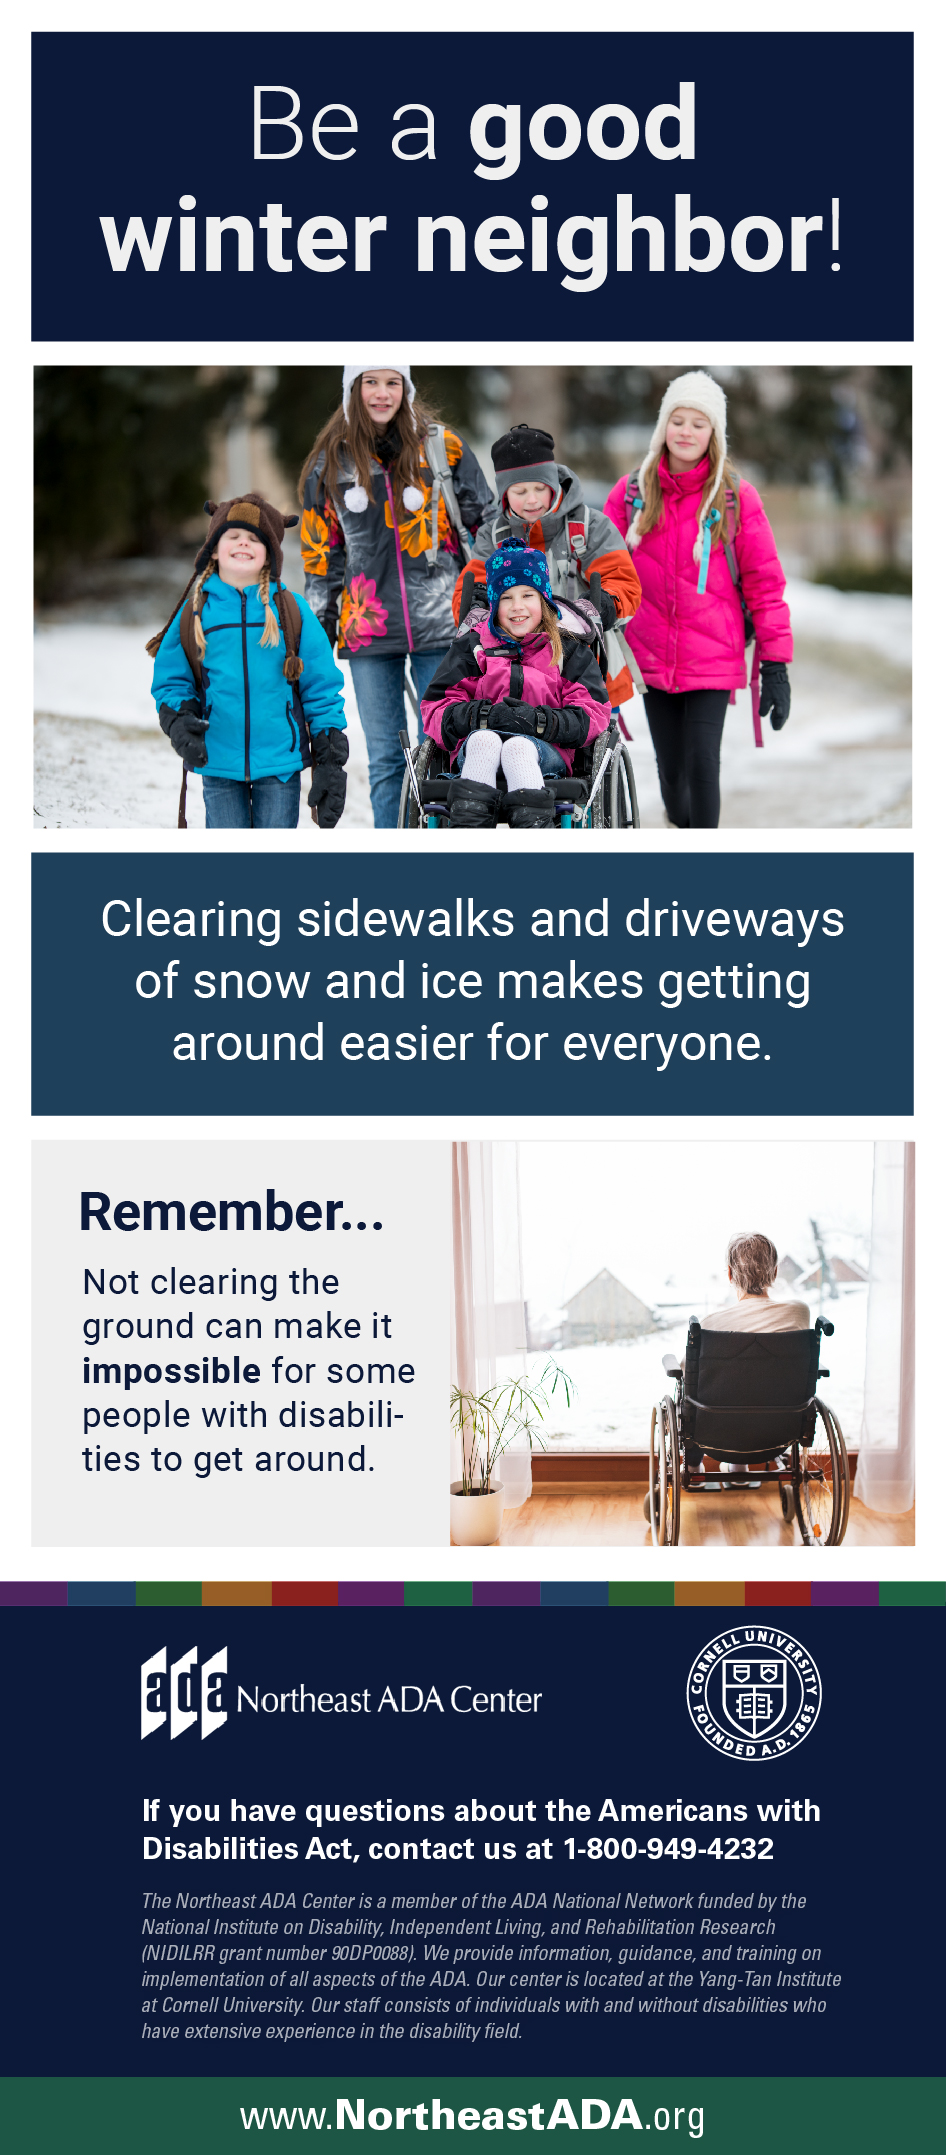 Infographic titled 'Be a good winter neighbor!' featuring kids smiling in the snow and a woman sitting in a wheelchair looking out the window at a wintery landscape.